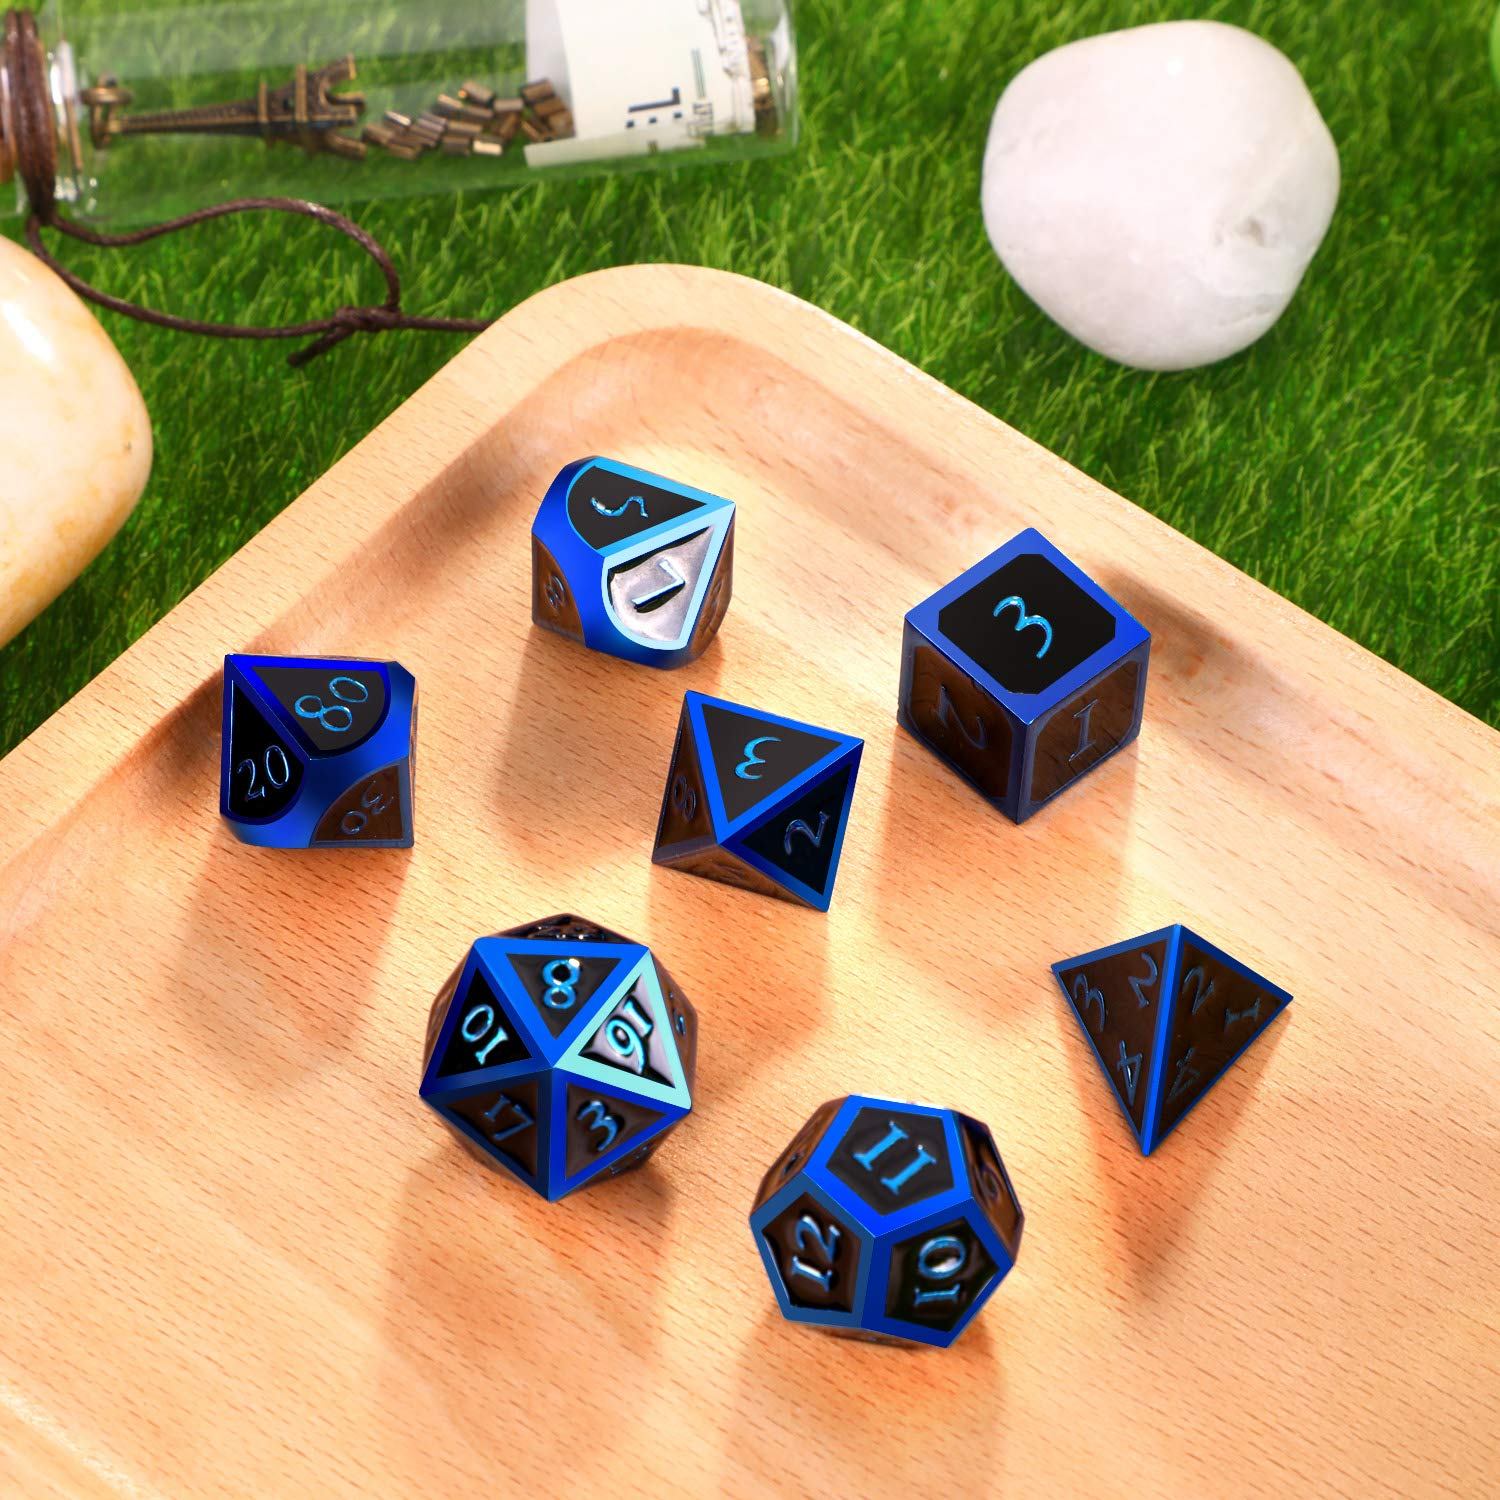 Hestya 7 Pieces Metal Dices Set DND Game Polyhedral Solid Metal D&D Dice Set with Storage Bag and Zinc Alloy with Enamel for Role Playing Game Dungeons and Dragons (Blue Edge Black) by Hestya (Image #2)